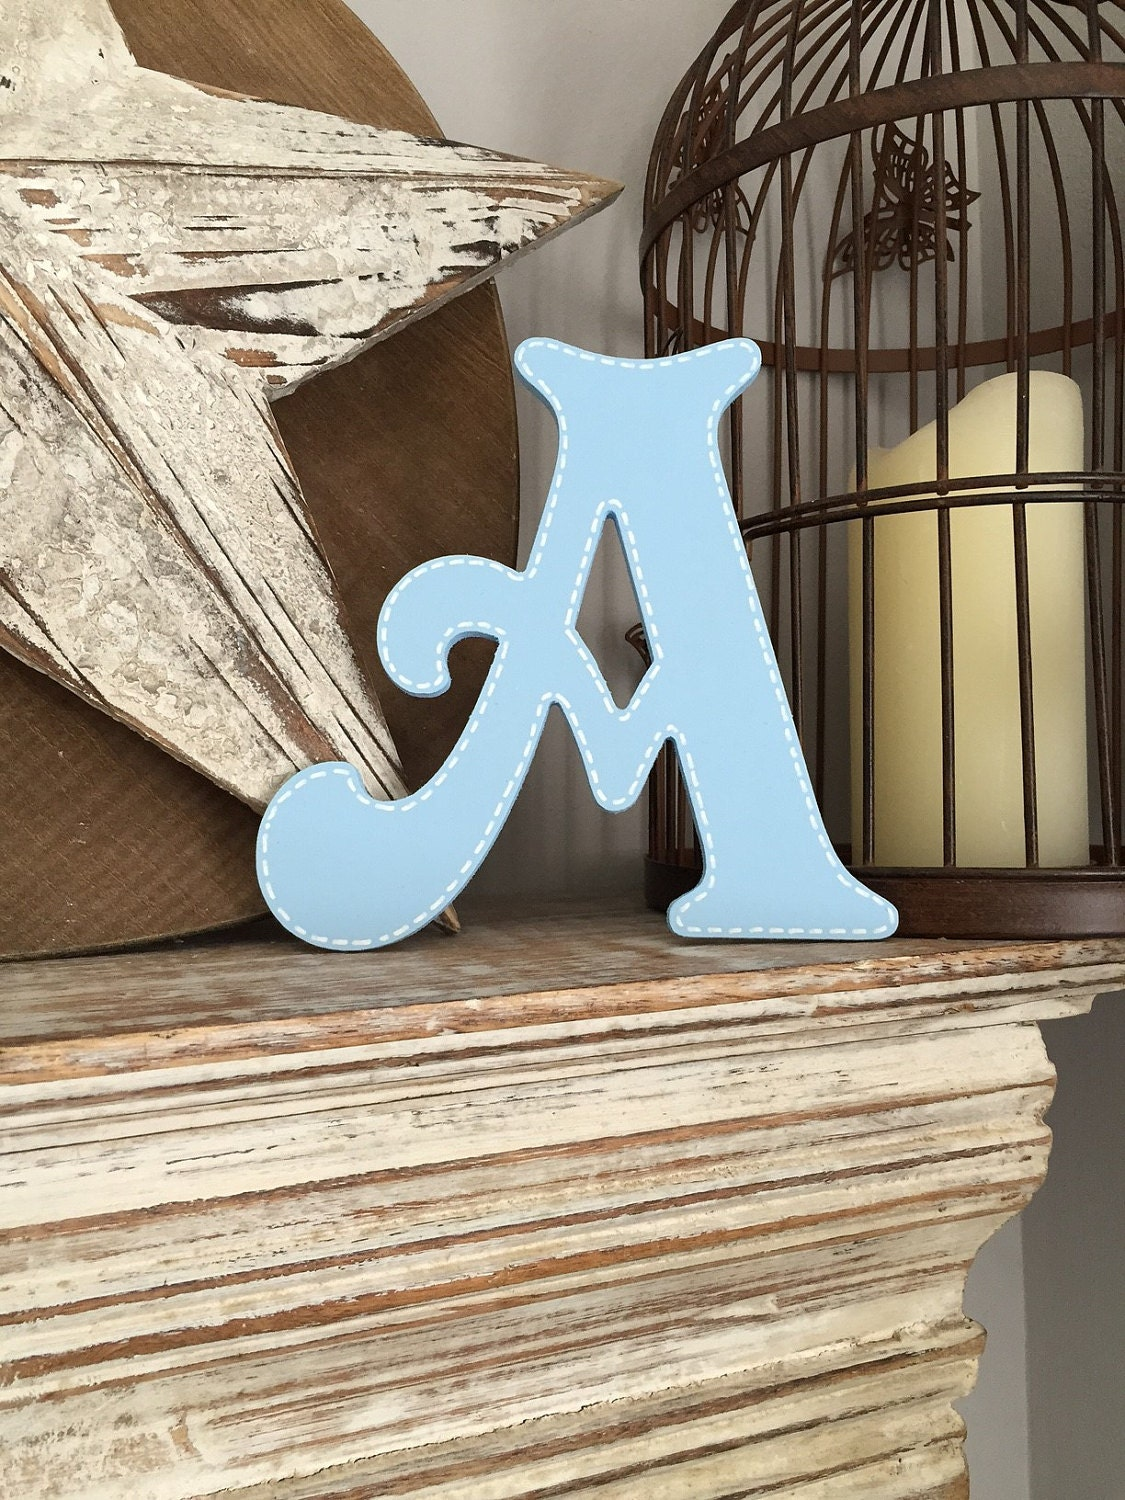 Victorian A with stitched edge - available as wall letter and standing letter